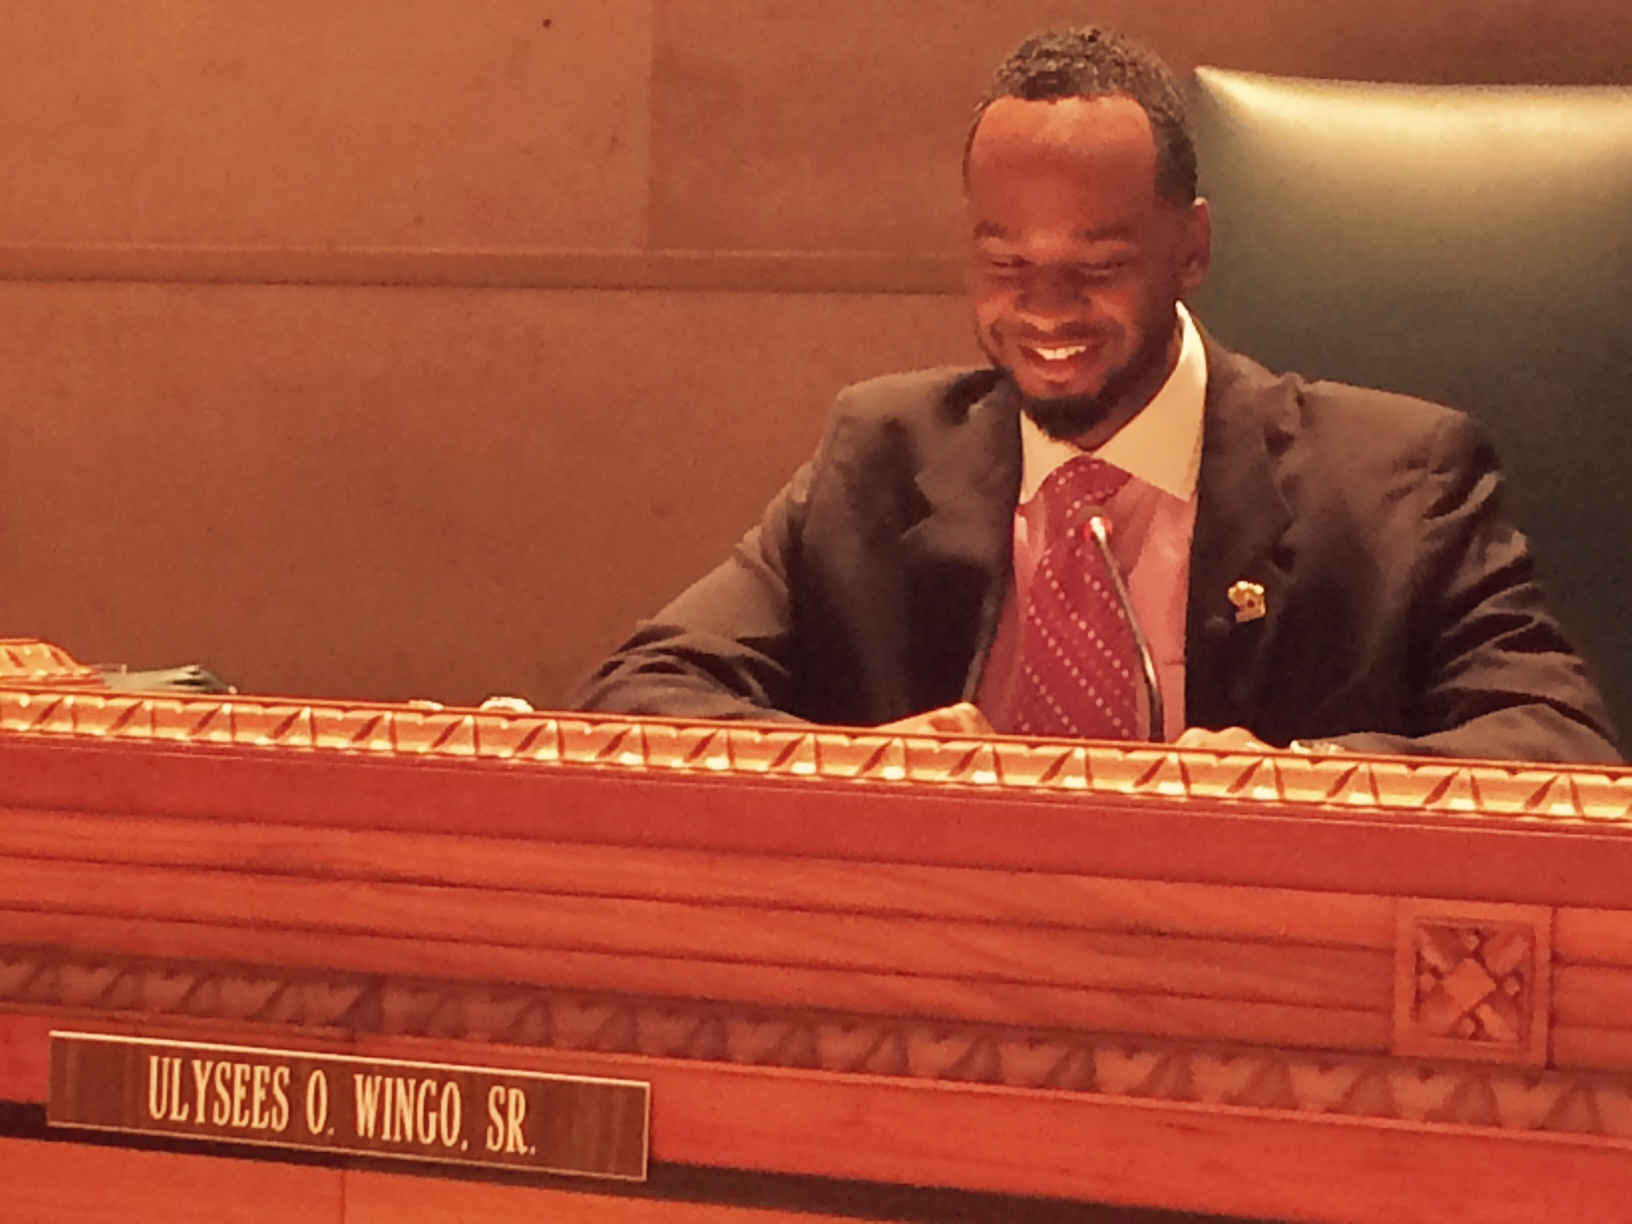 Masten Councilman Ulysees Wingo Thursday chairs his first Council Committee session